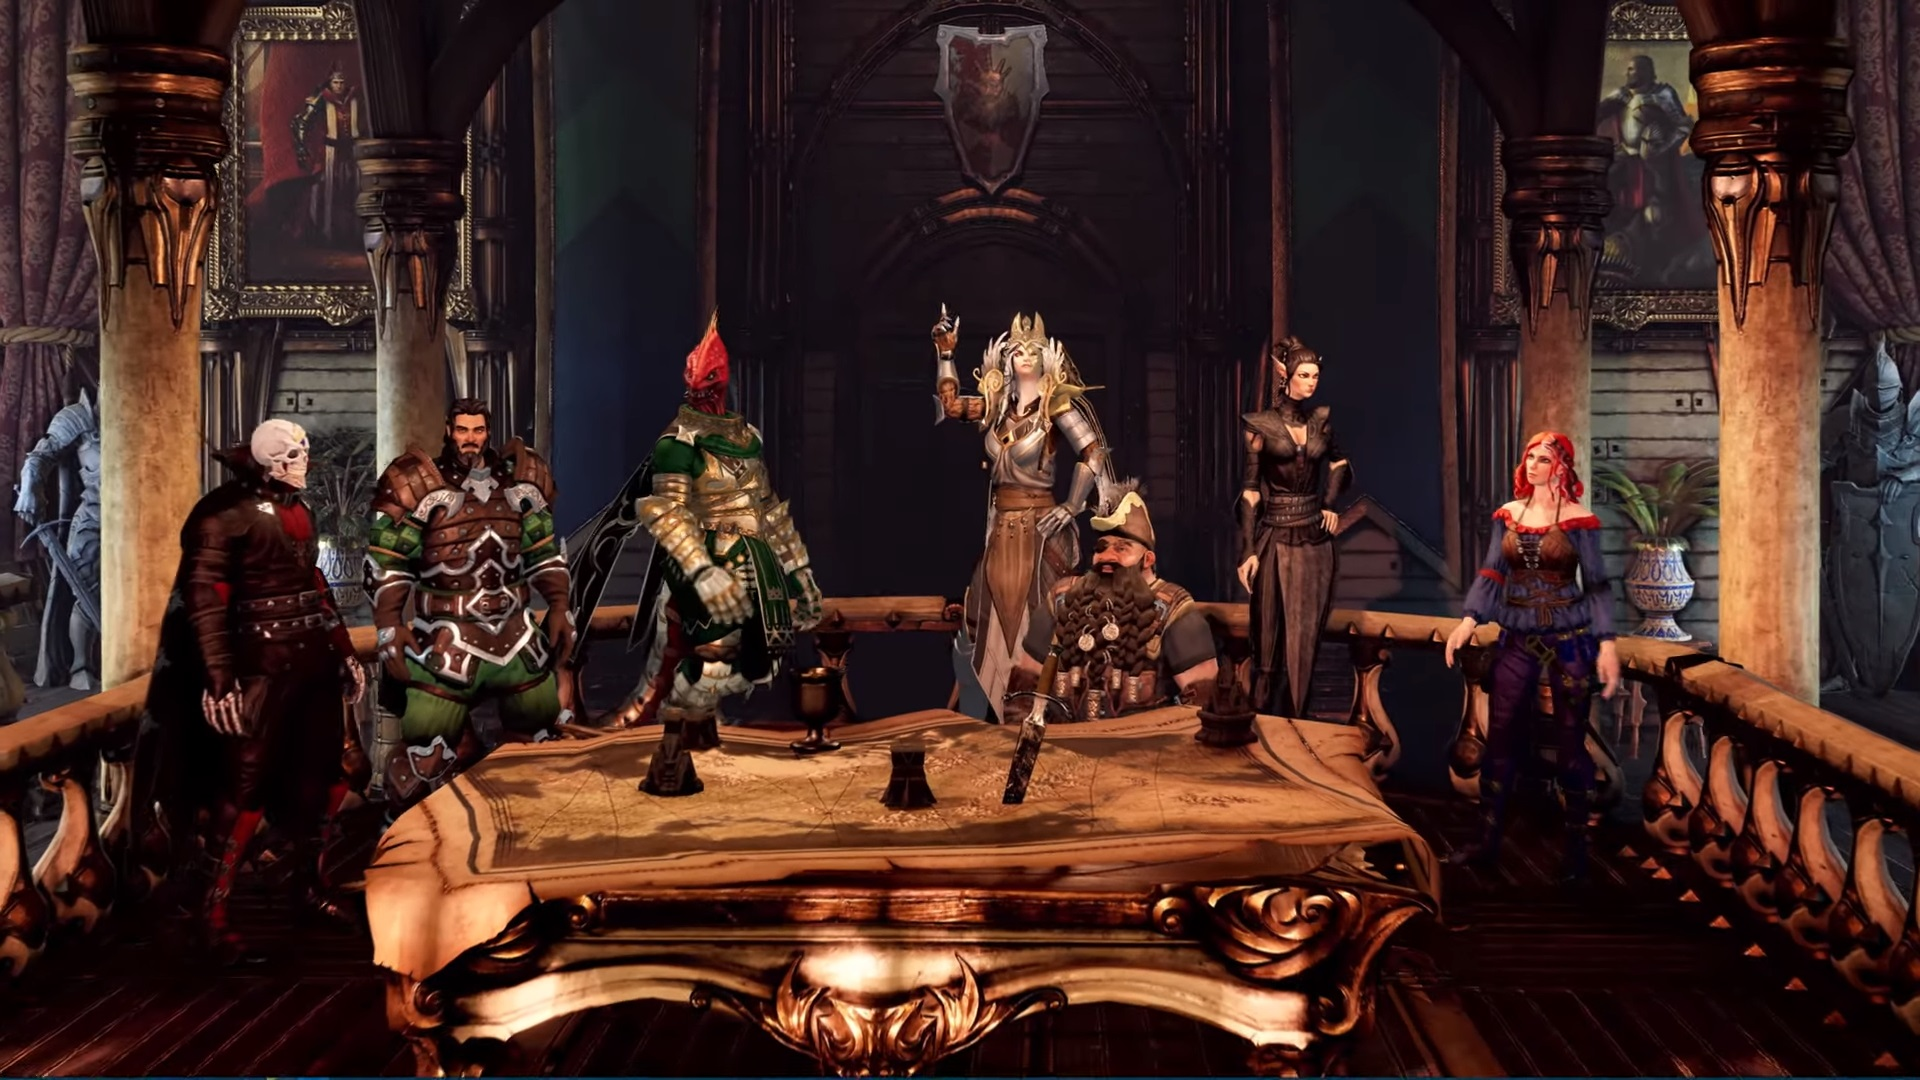 Divinity: Fallen Heroes is a tactical RPG follow-up to